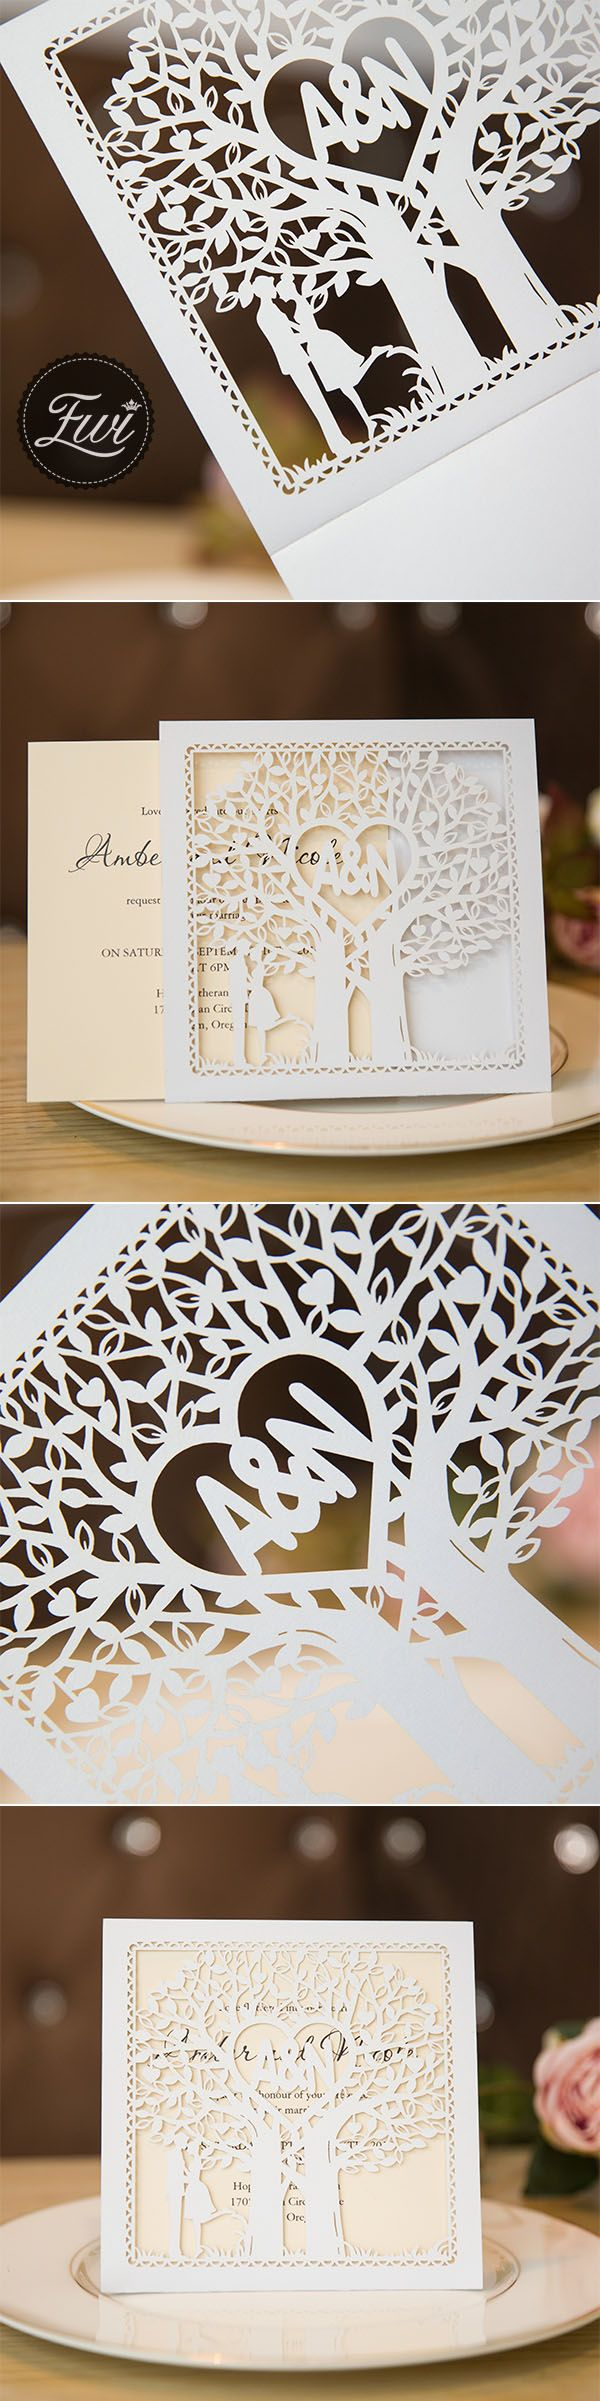 invitation wordings for wedding by bride and groom%0A Chic rustic love tree bride and groom laser cut wedding invites  wedding  invitation